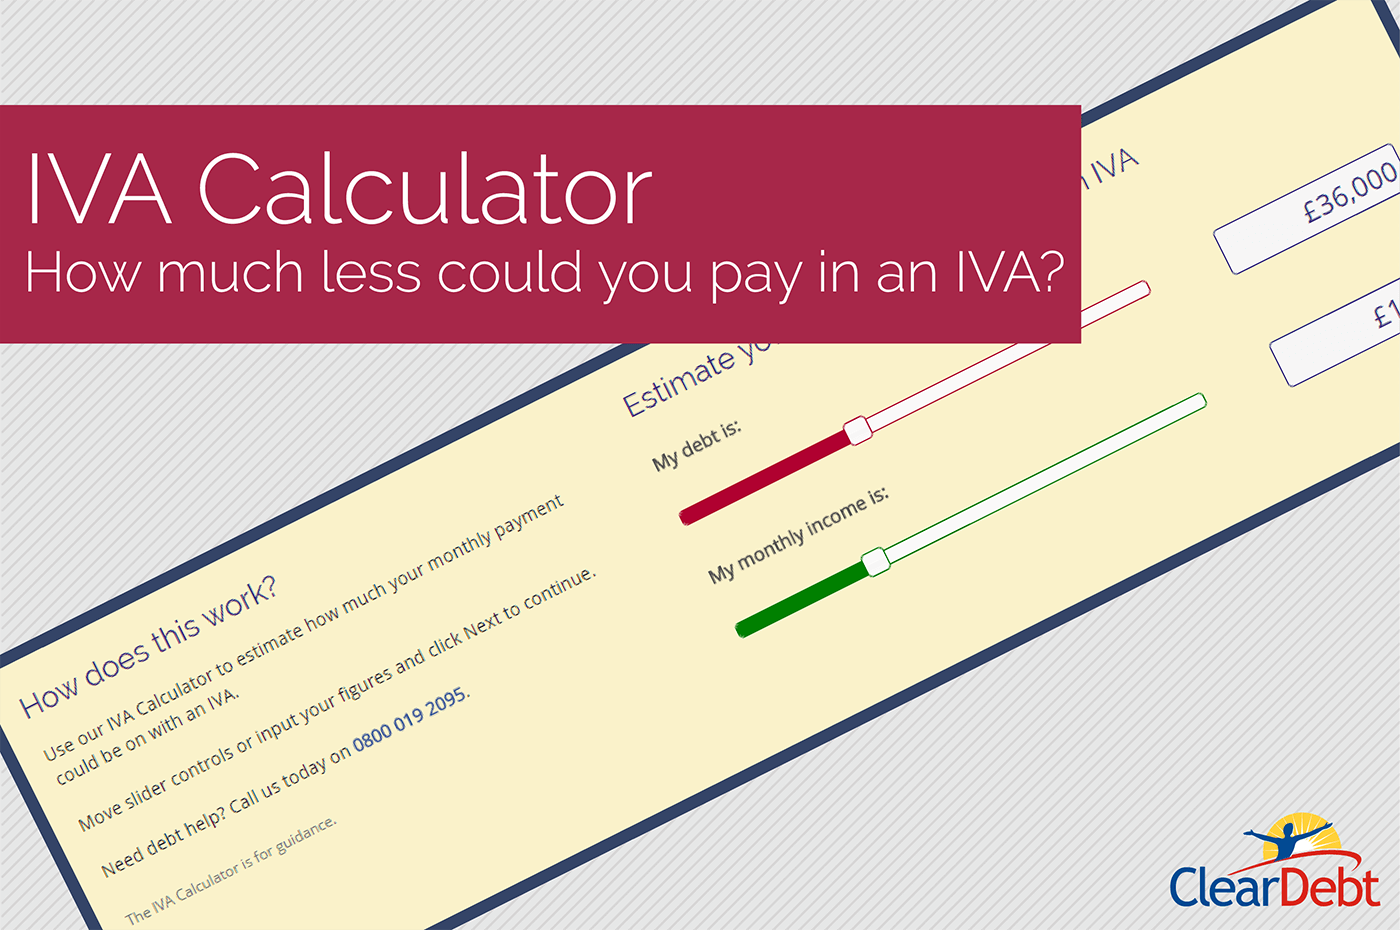 IVA Calculator - ClearDebt